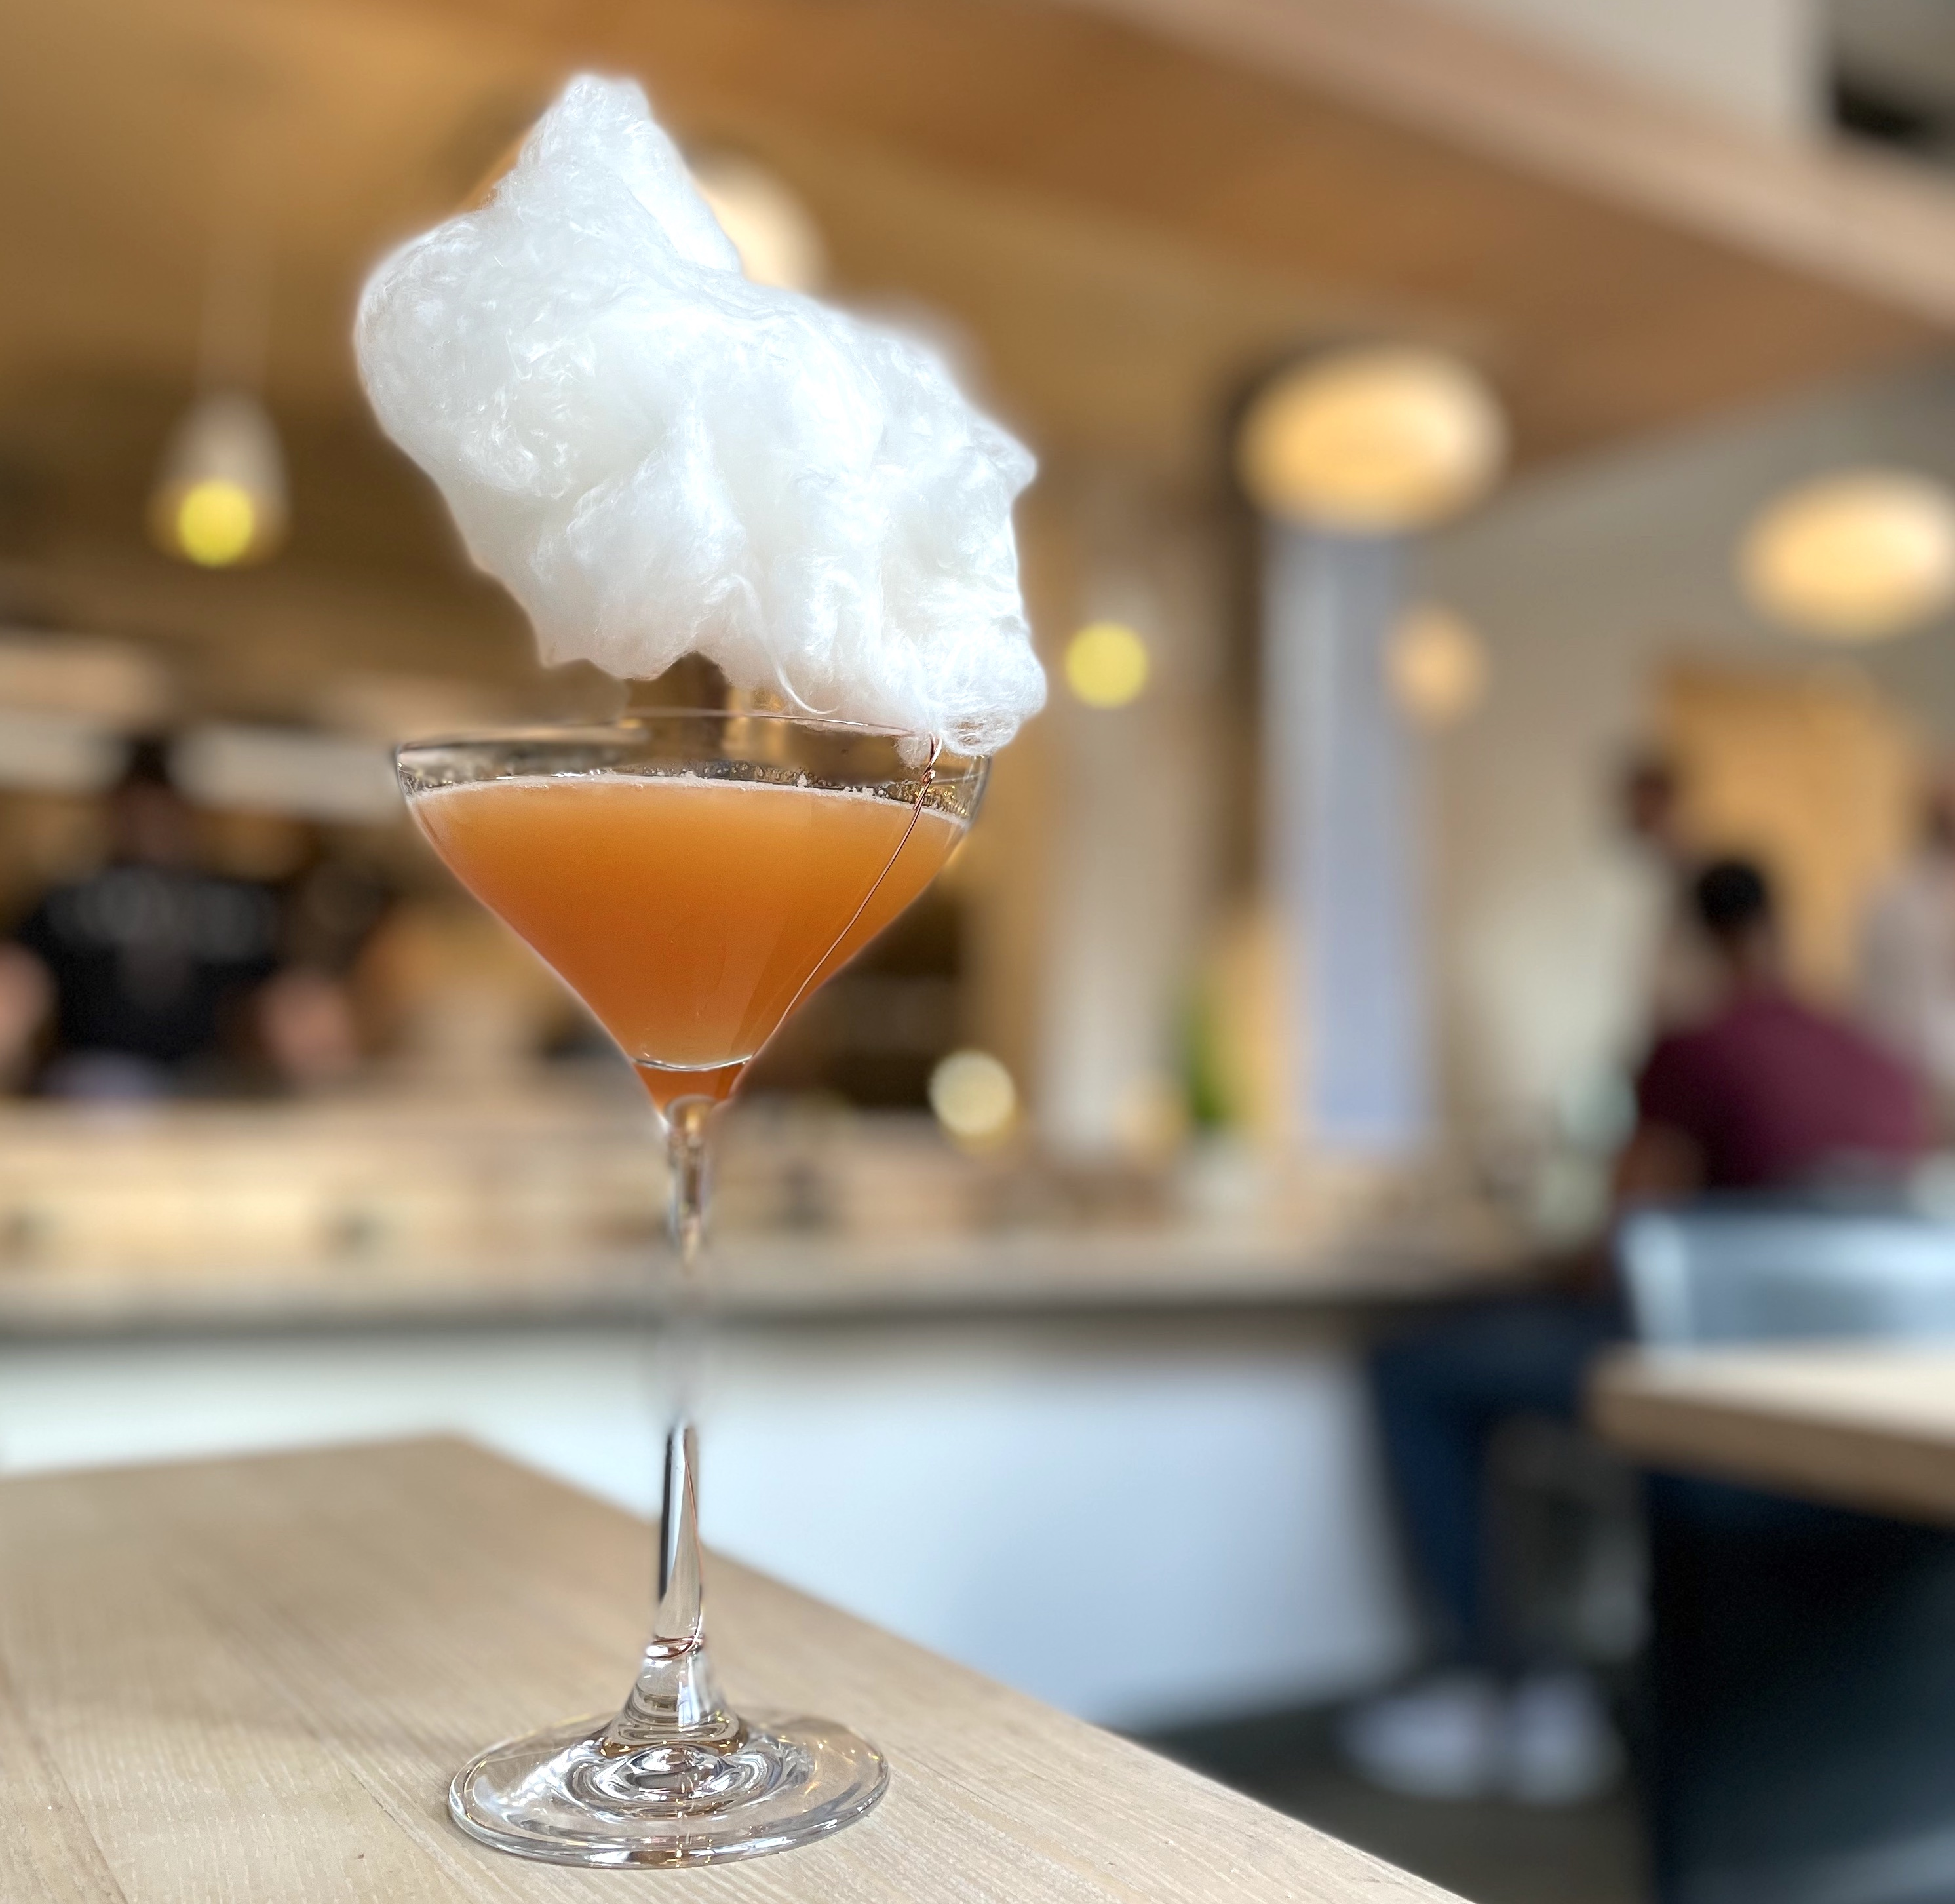 A martini glass is filled with orange liquid on a blonde wood table. It appears that there is a floating cloud above the glass